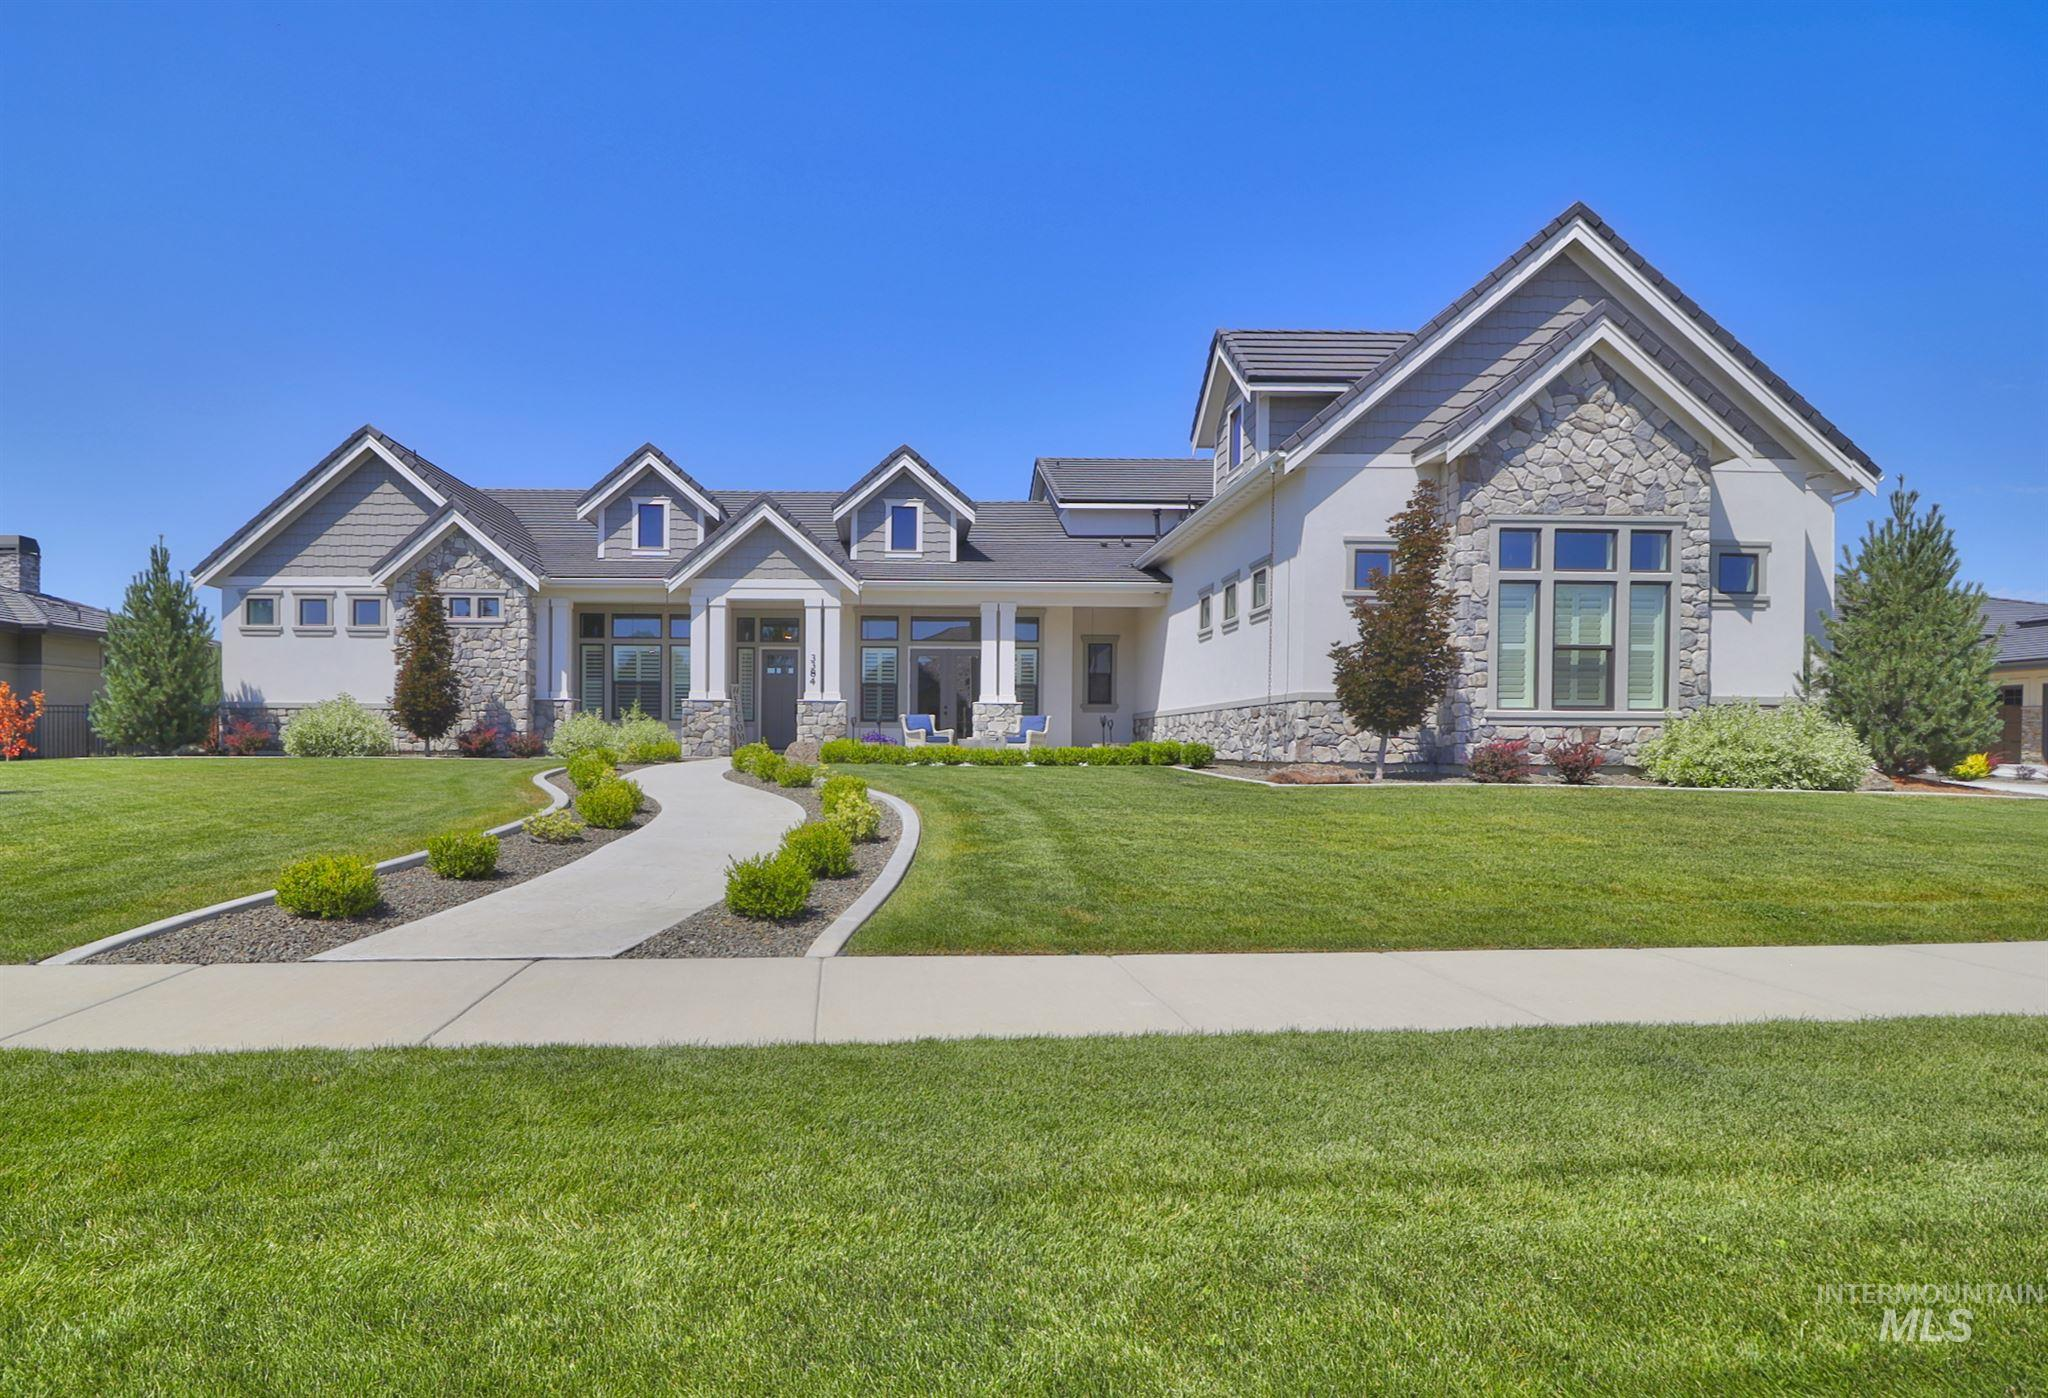 Photo for 3384 W Salix Dr, Meridian, ID 83646 (MLS # 98775718)